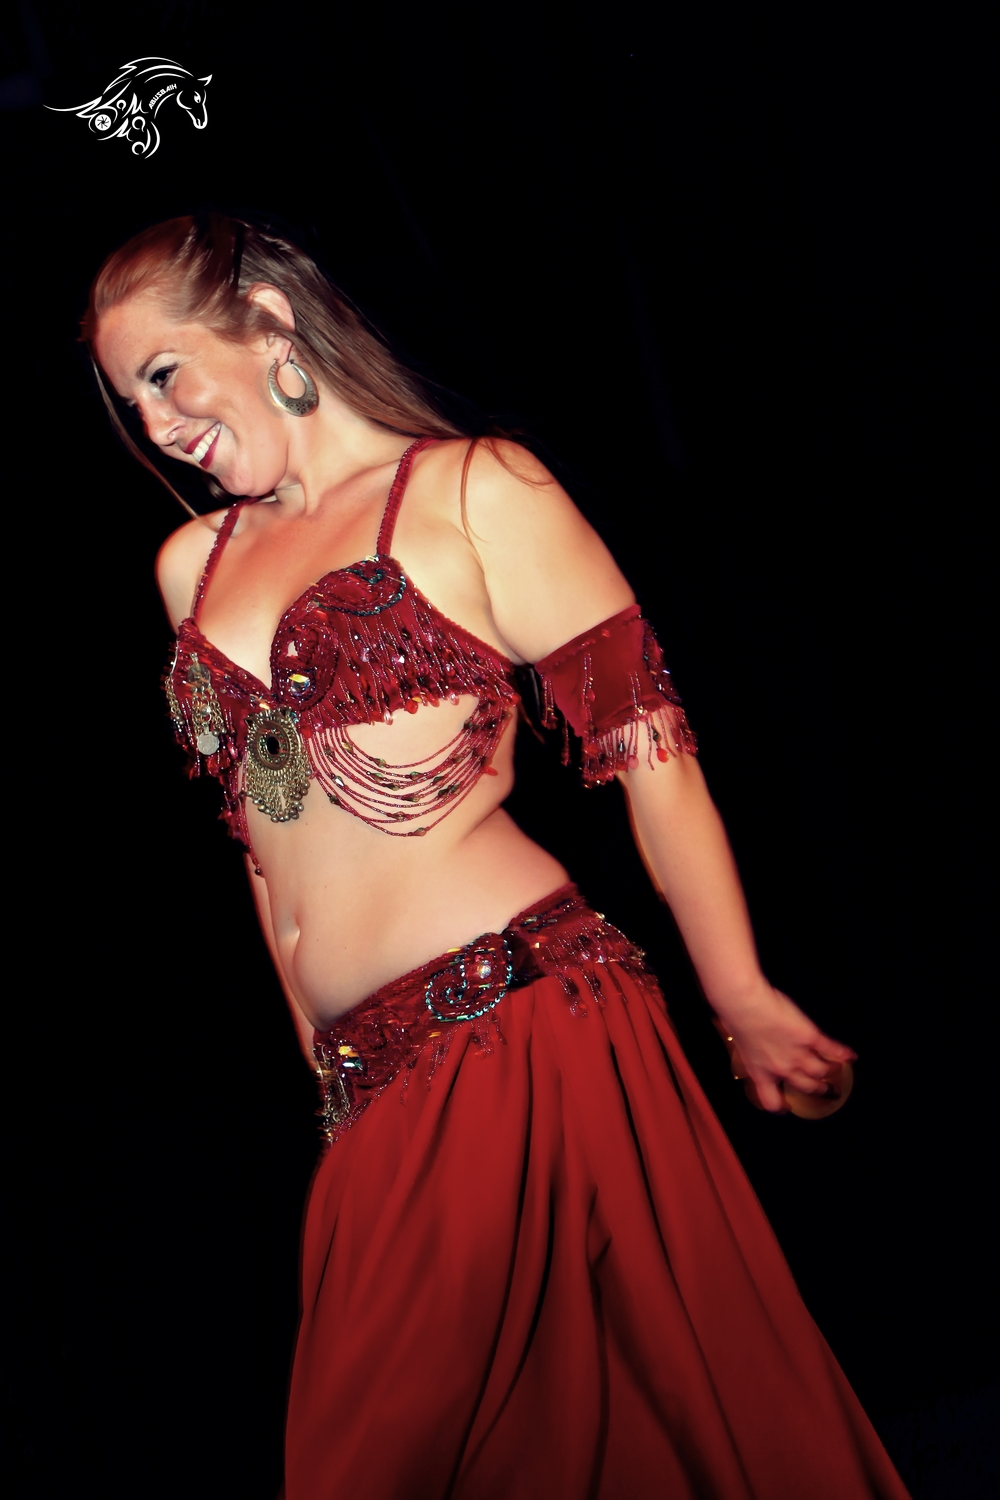 Maria Oriental - Belly Dance with Zills at Stockholm Belly Dance Festival 2015. Photo: Mohammad Abusbaih,   https://www.facebook.com/mohd.abusbaih